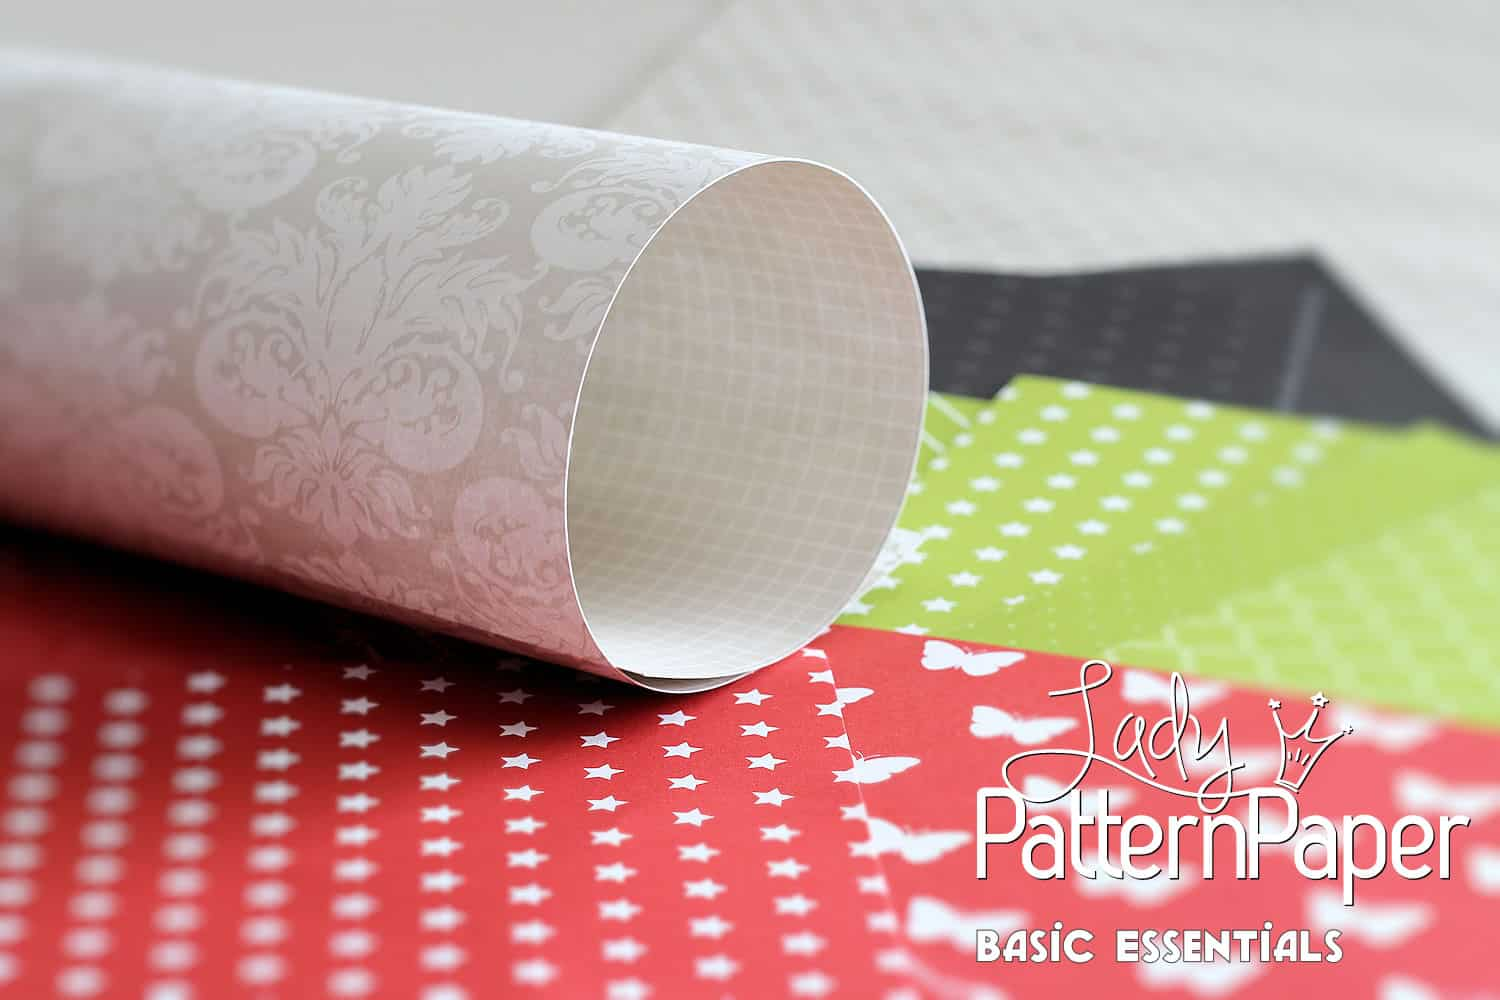 Lady Pattern Paper - Basic Essentials - Combo